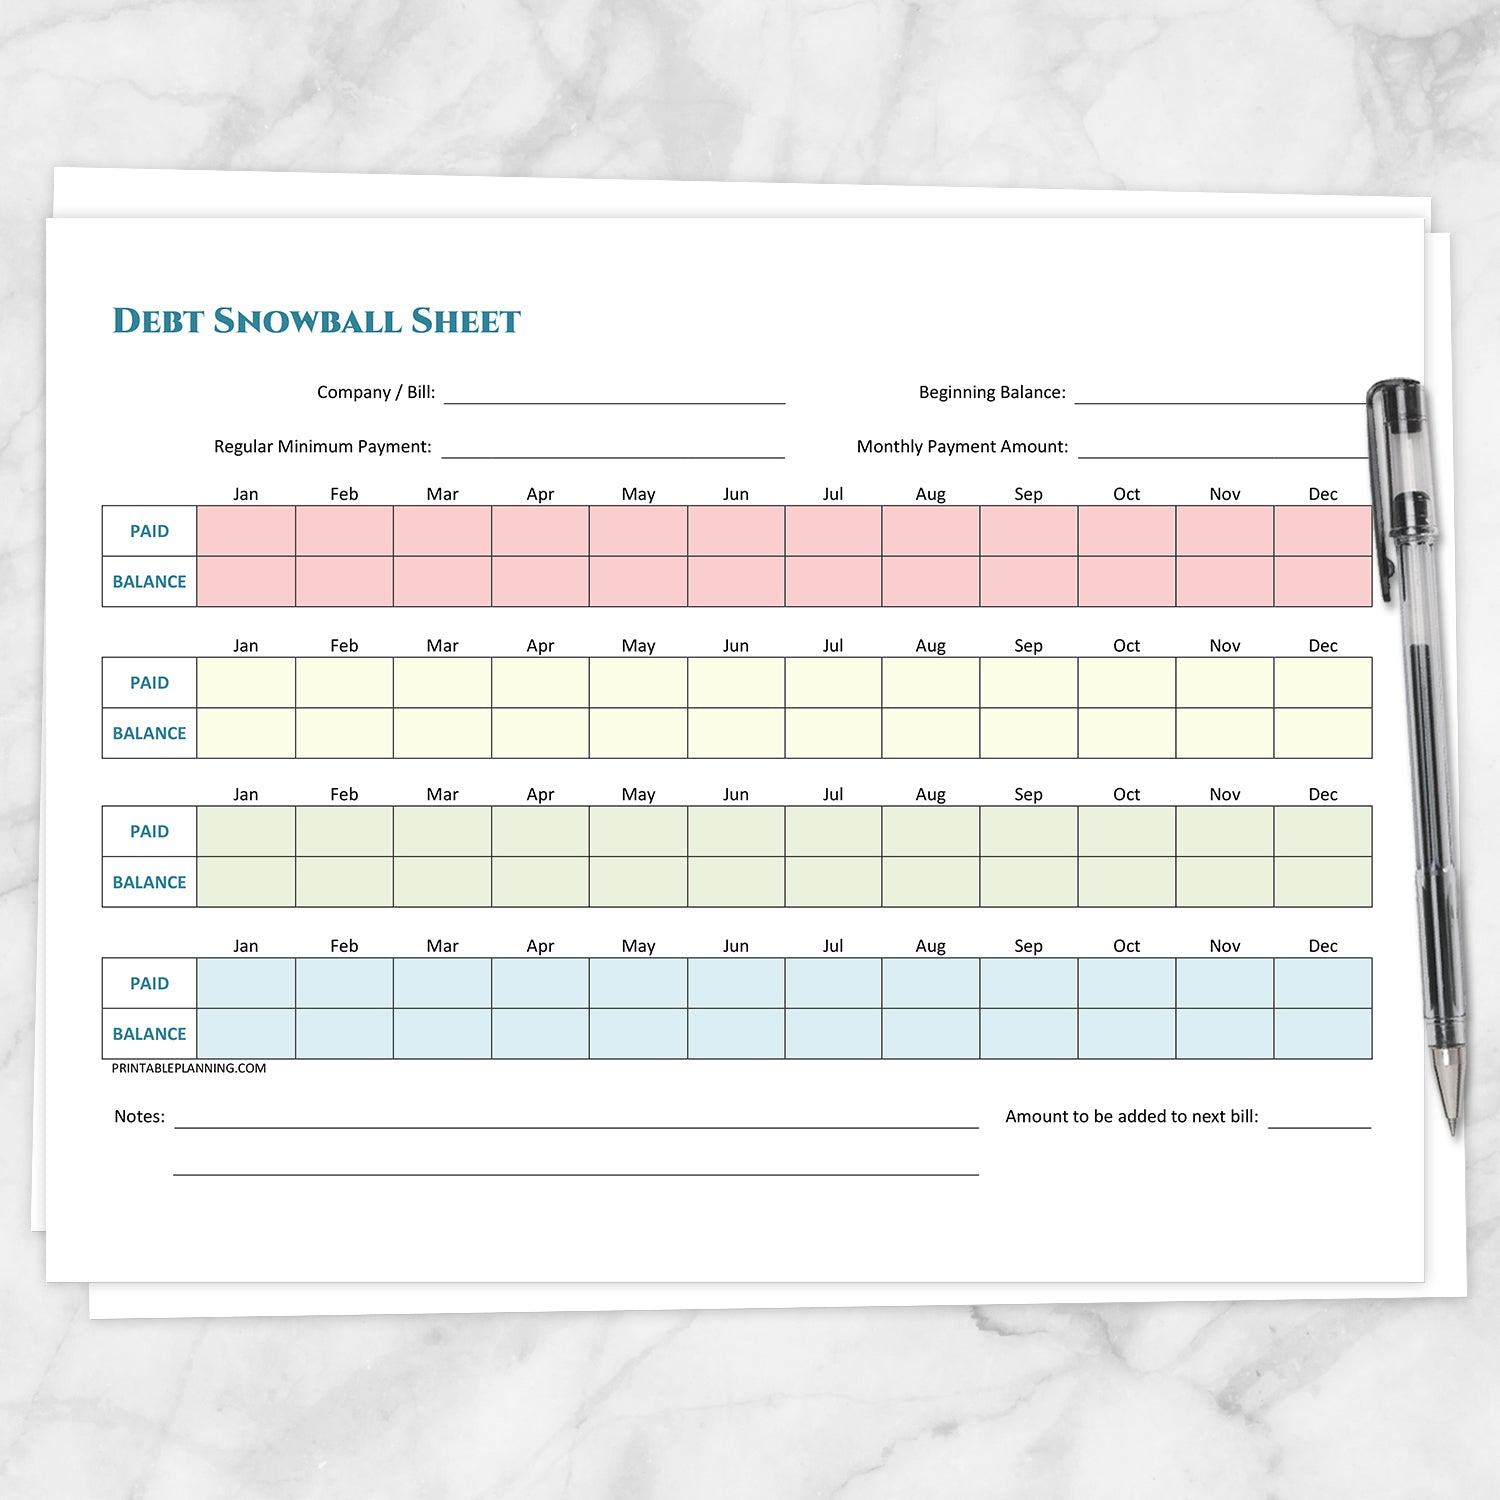 image relating to Debt Snowball Printable called Credit card debt Snowball Sheet and Financial debt Payoff Program - Printable Offer at Printable Building for simply 5.00